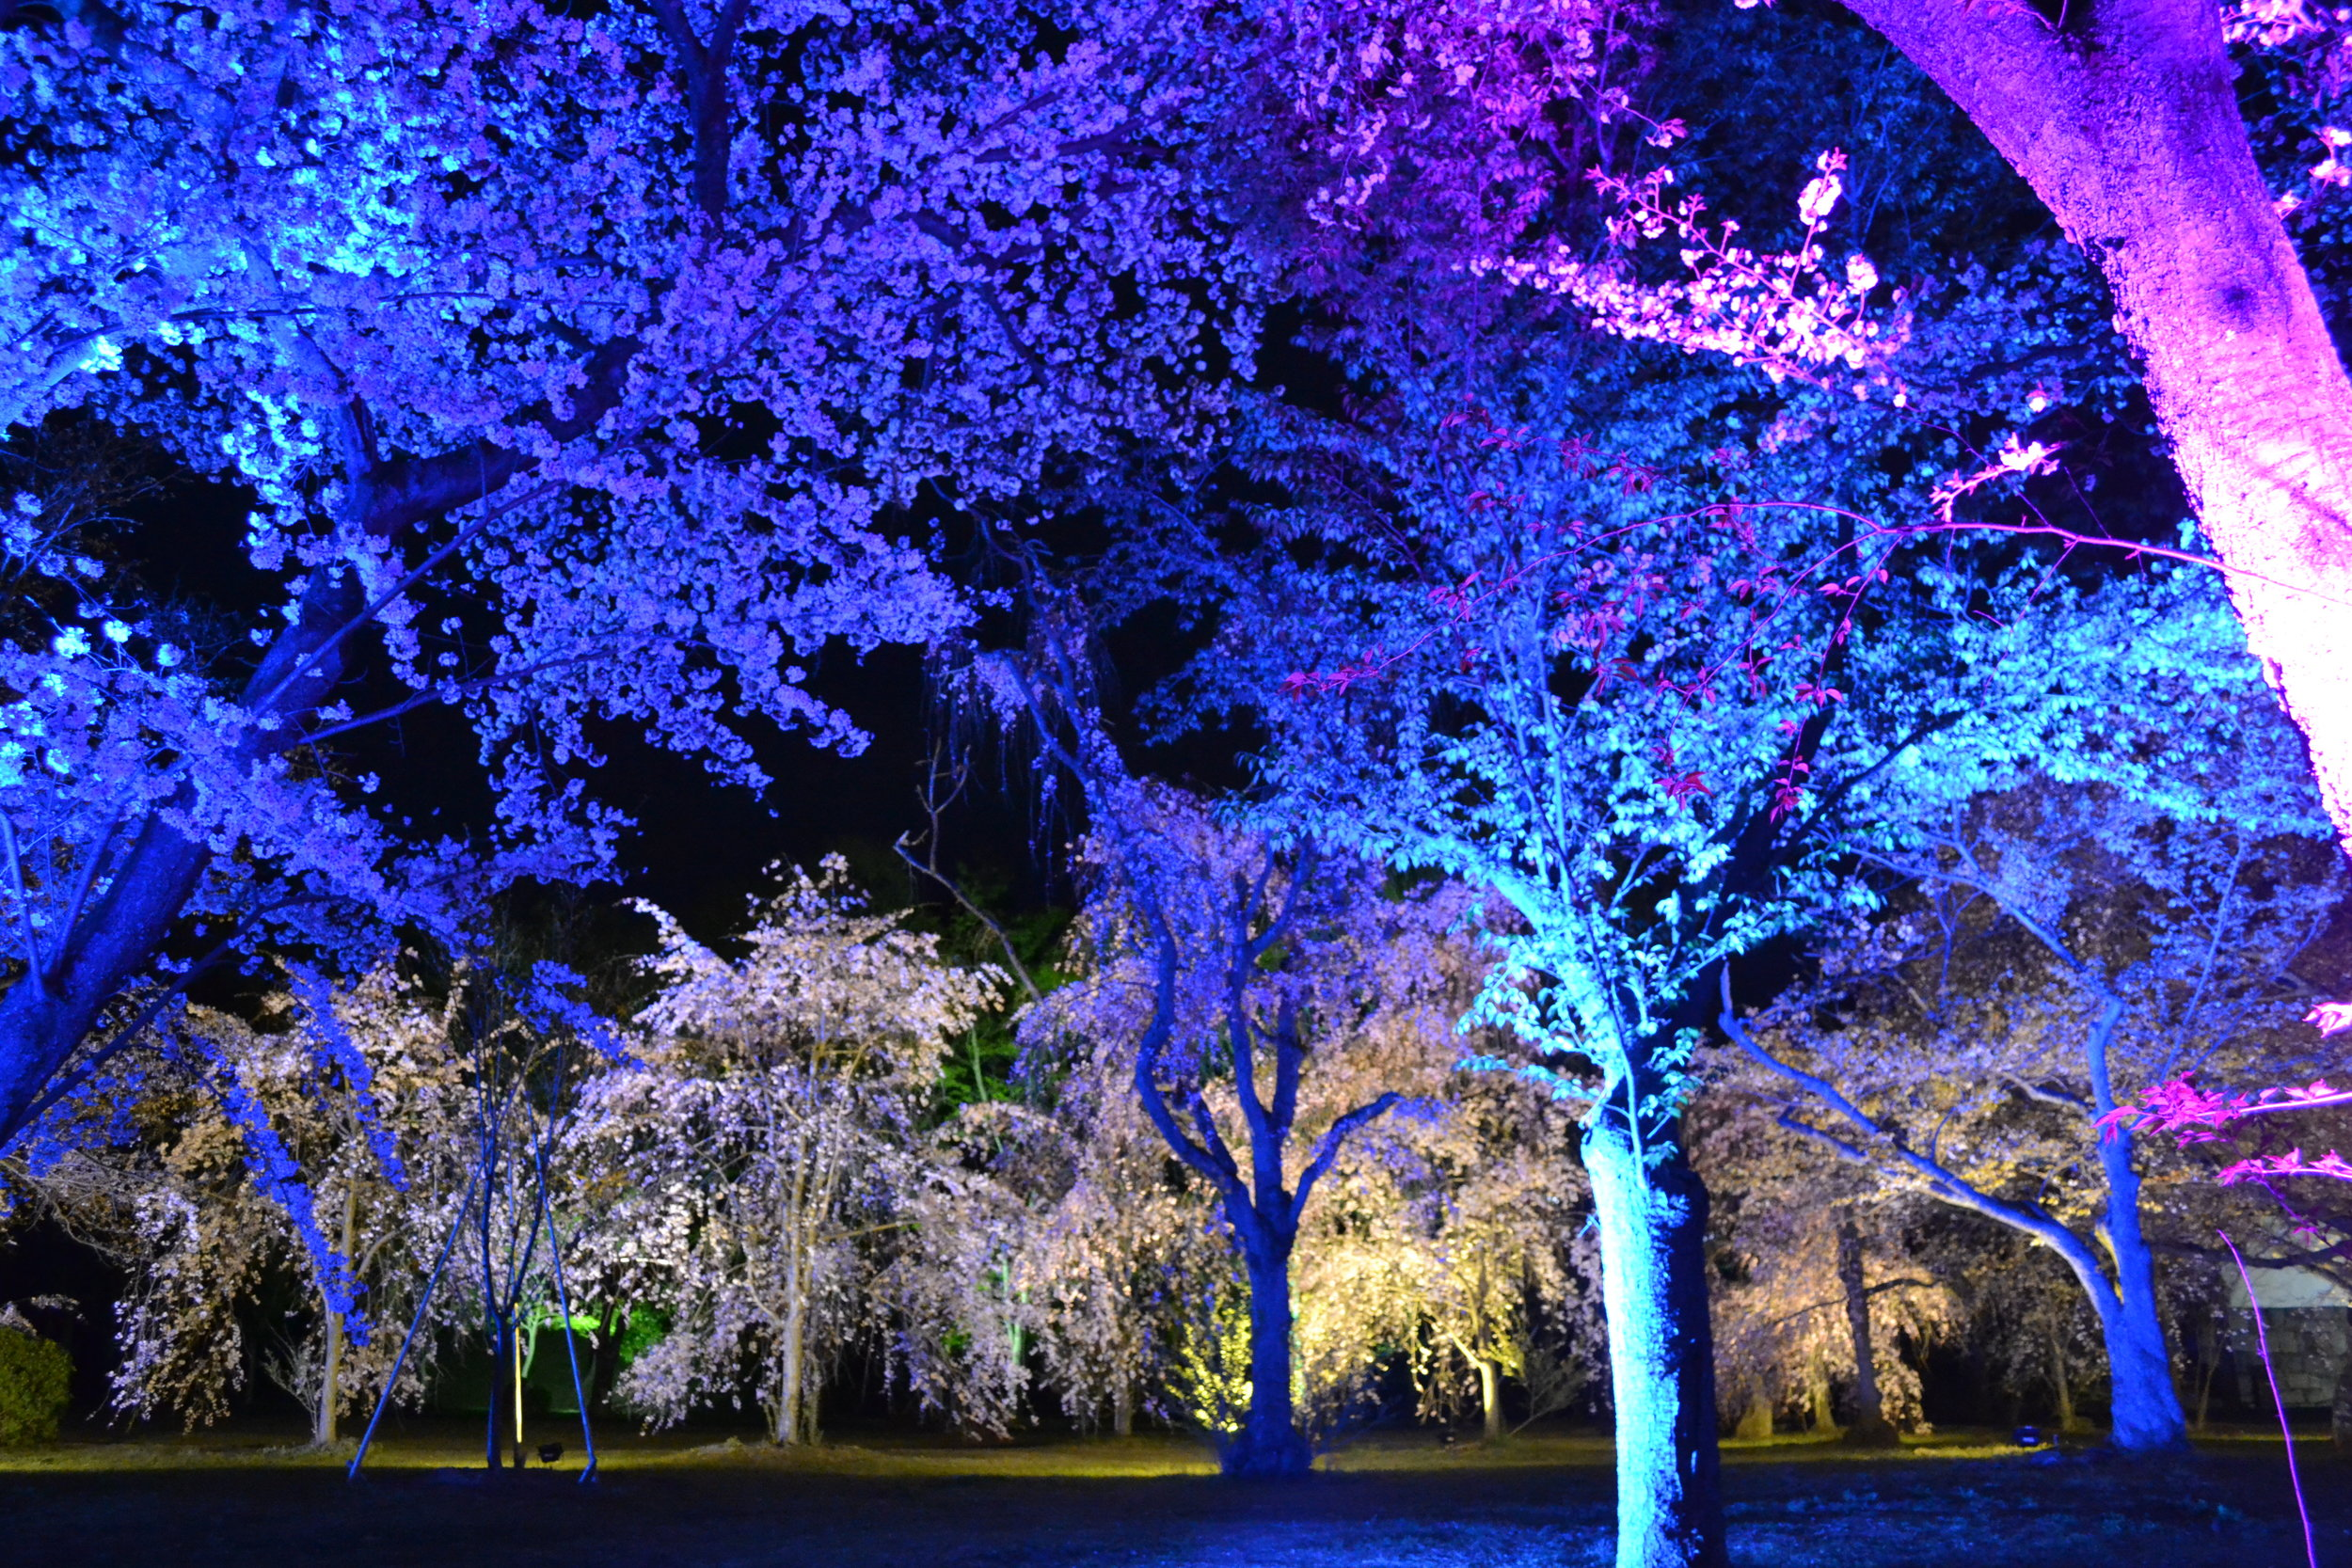 The further you go in, you see the lights on the trees change colors. This changes the whole vibe of the rest of the castle grounds, and it feels like just you're in a forest, not a castle!